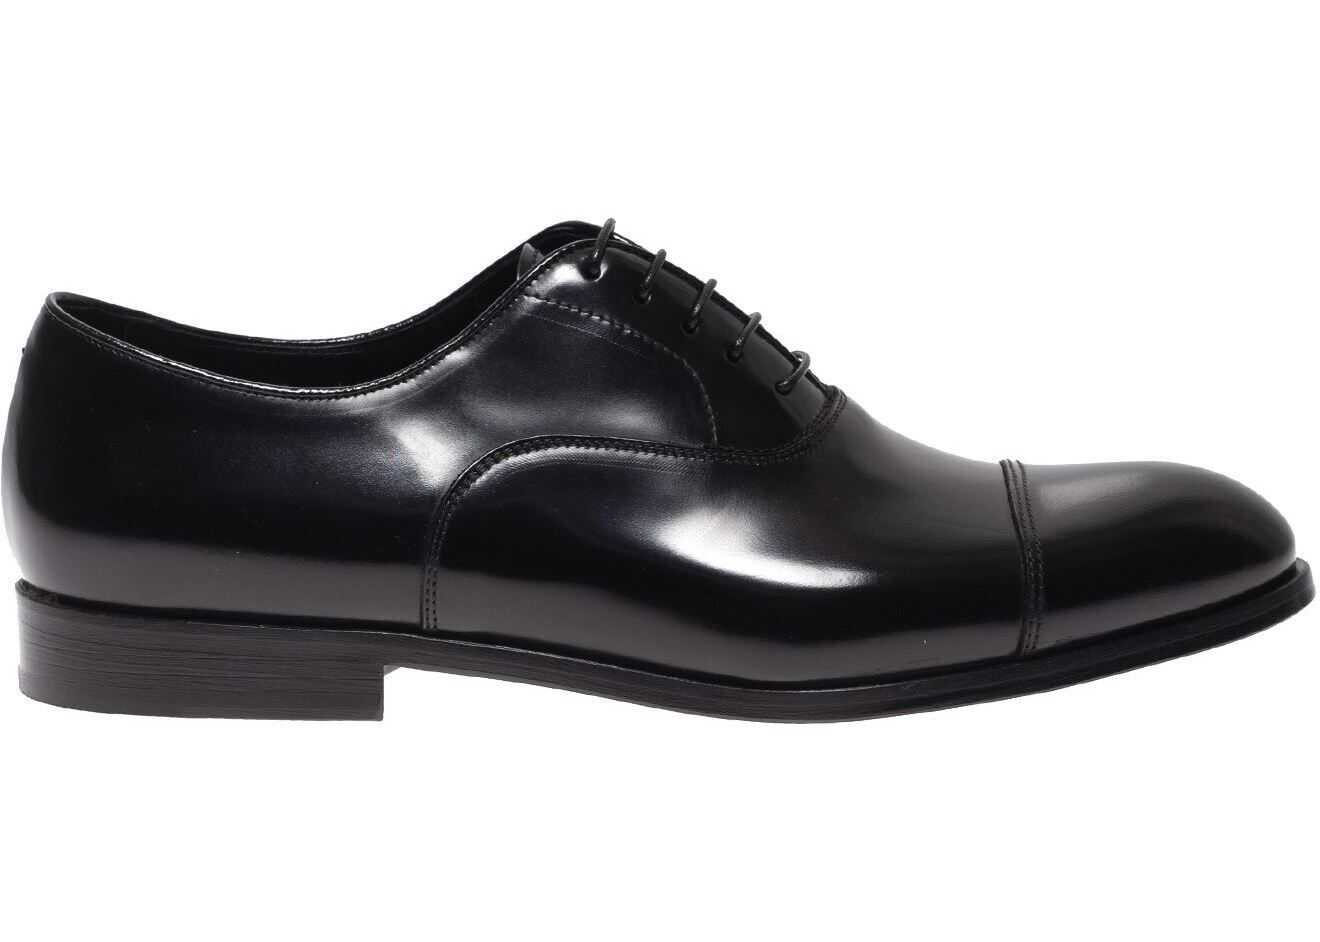 Oxford Shoes In Black Brushed Leather thumbnail